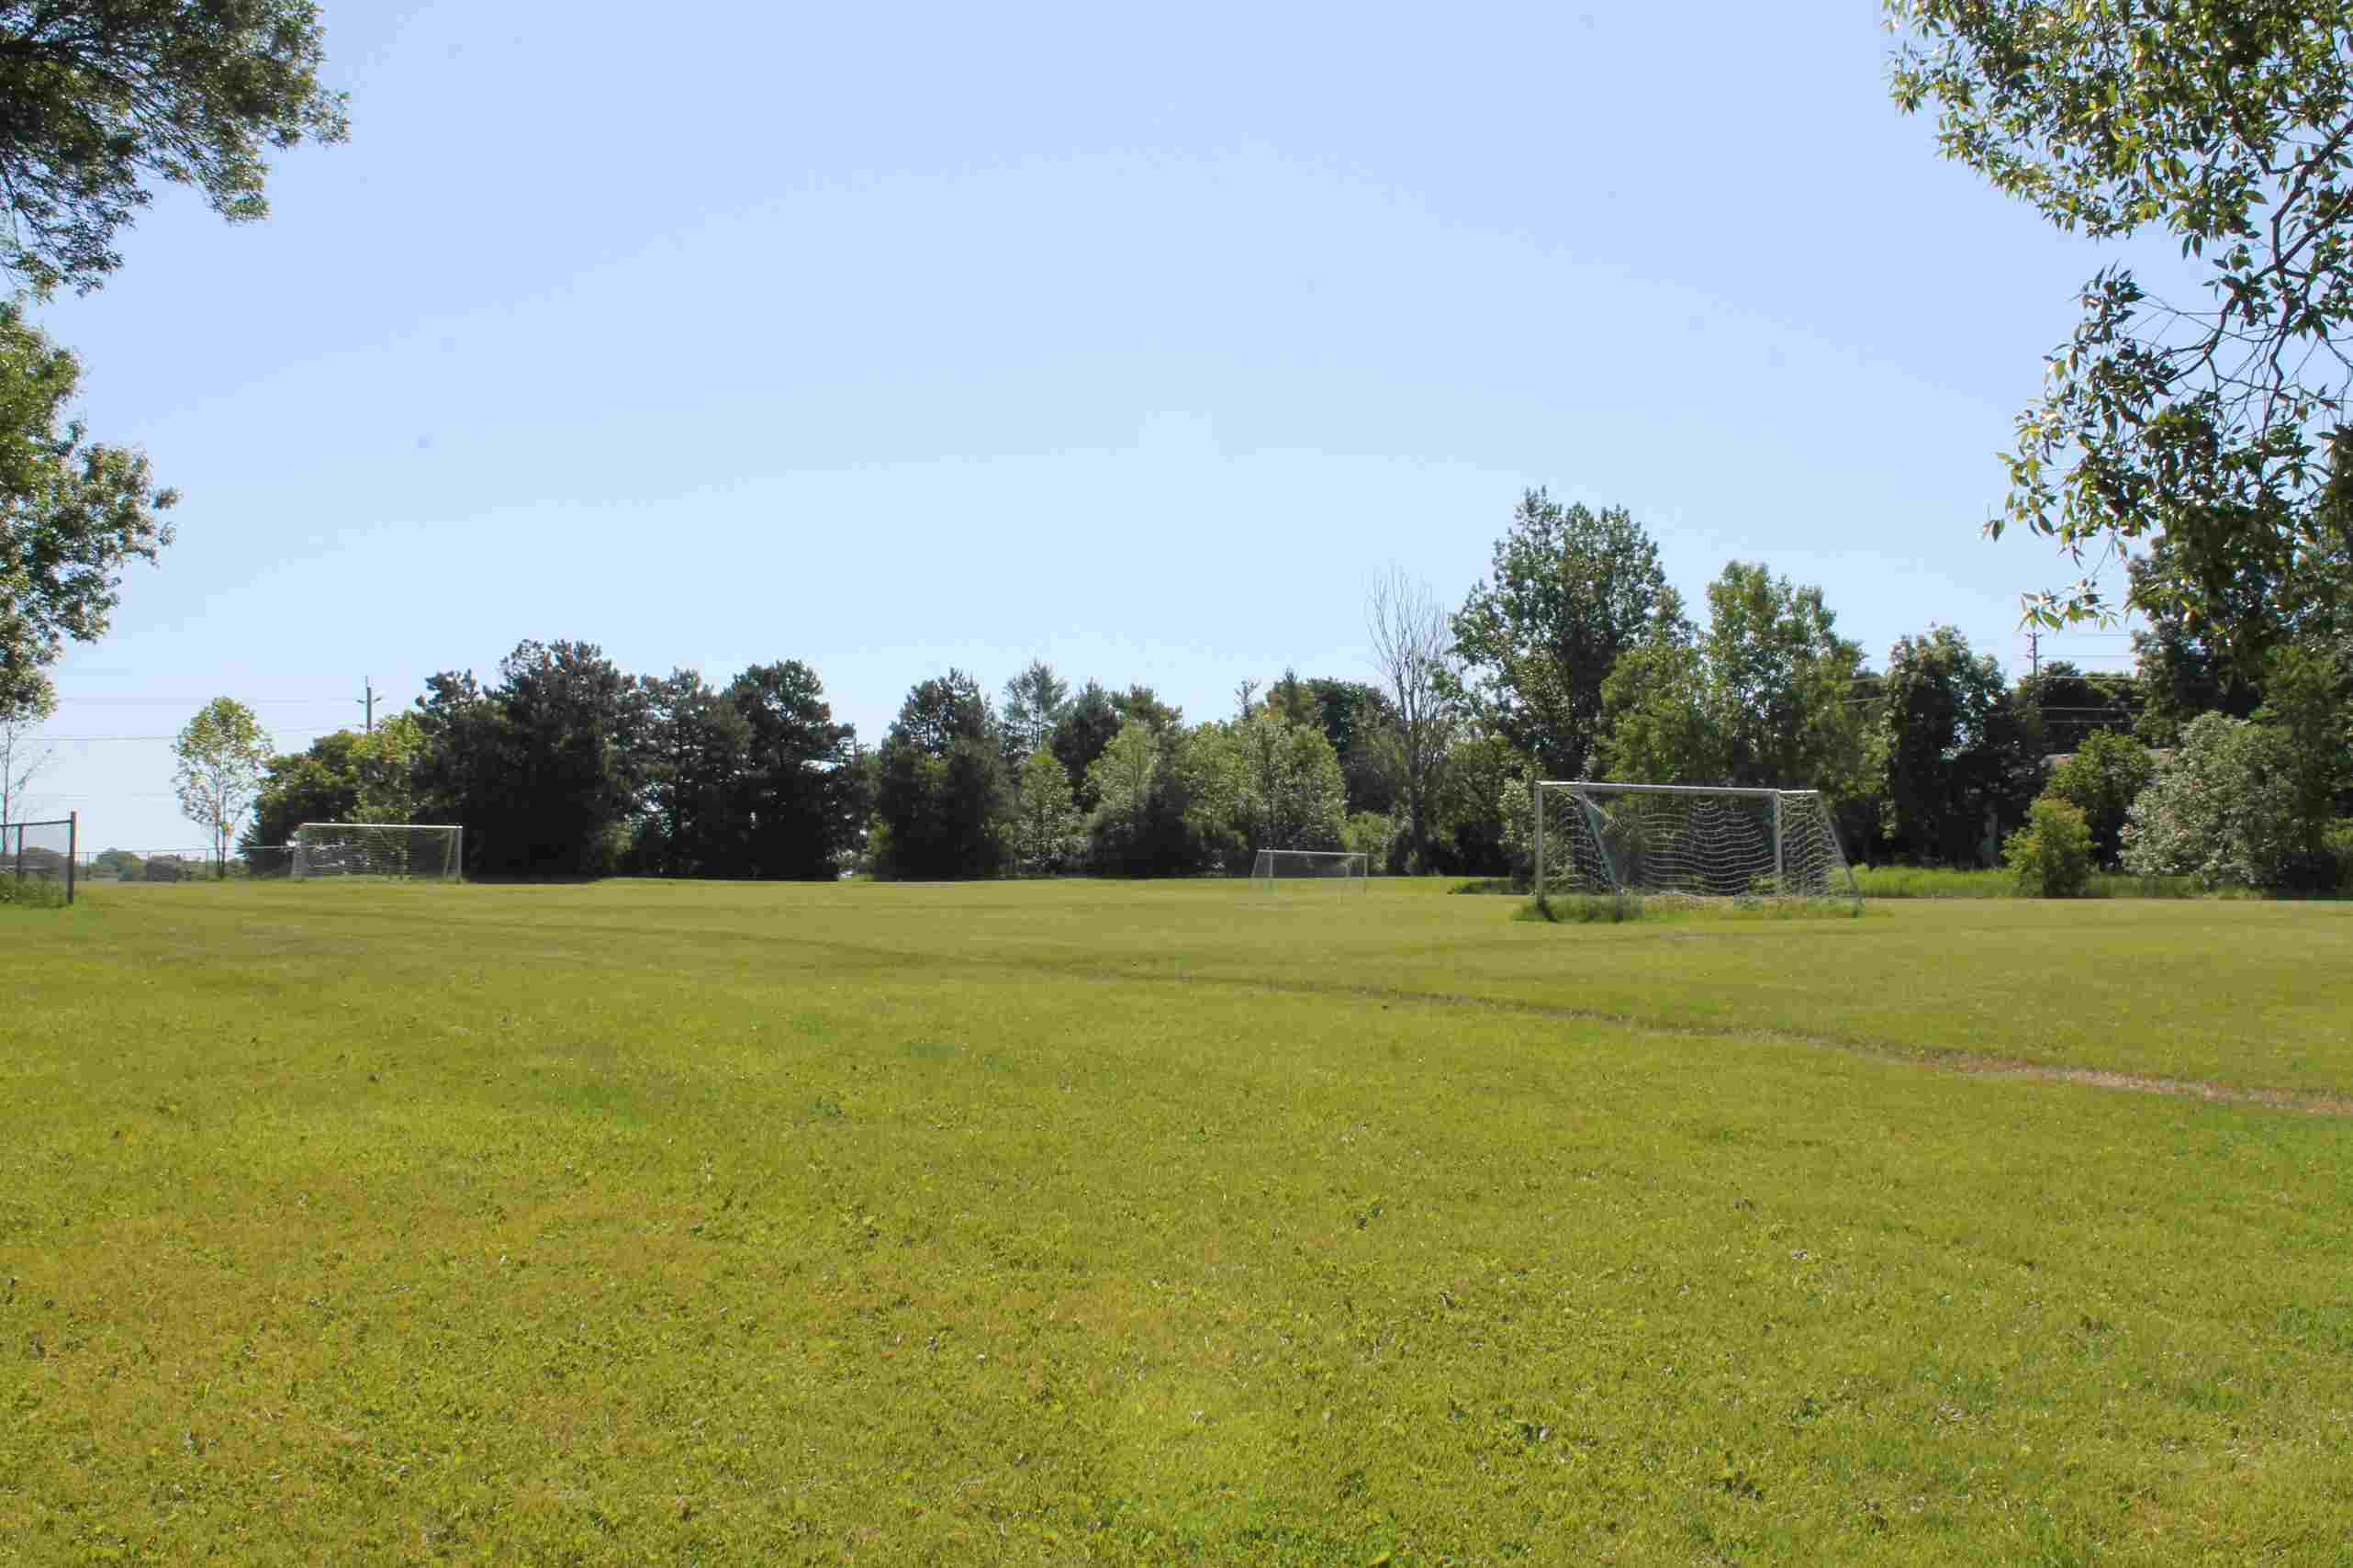 Riverside Park - West Upper Fields.jpg